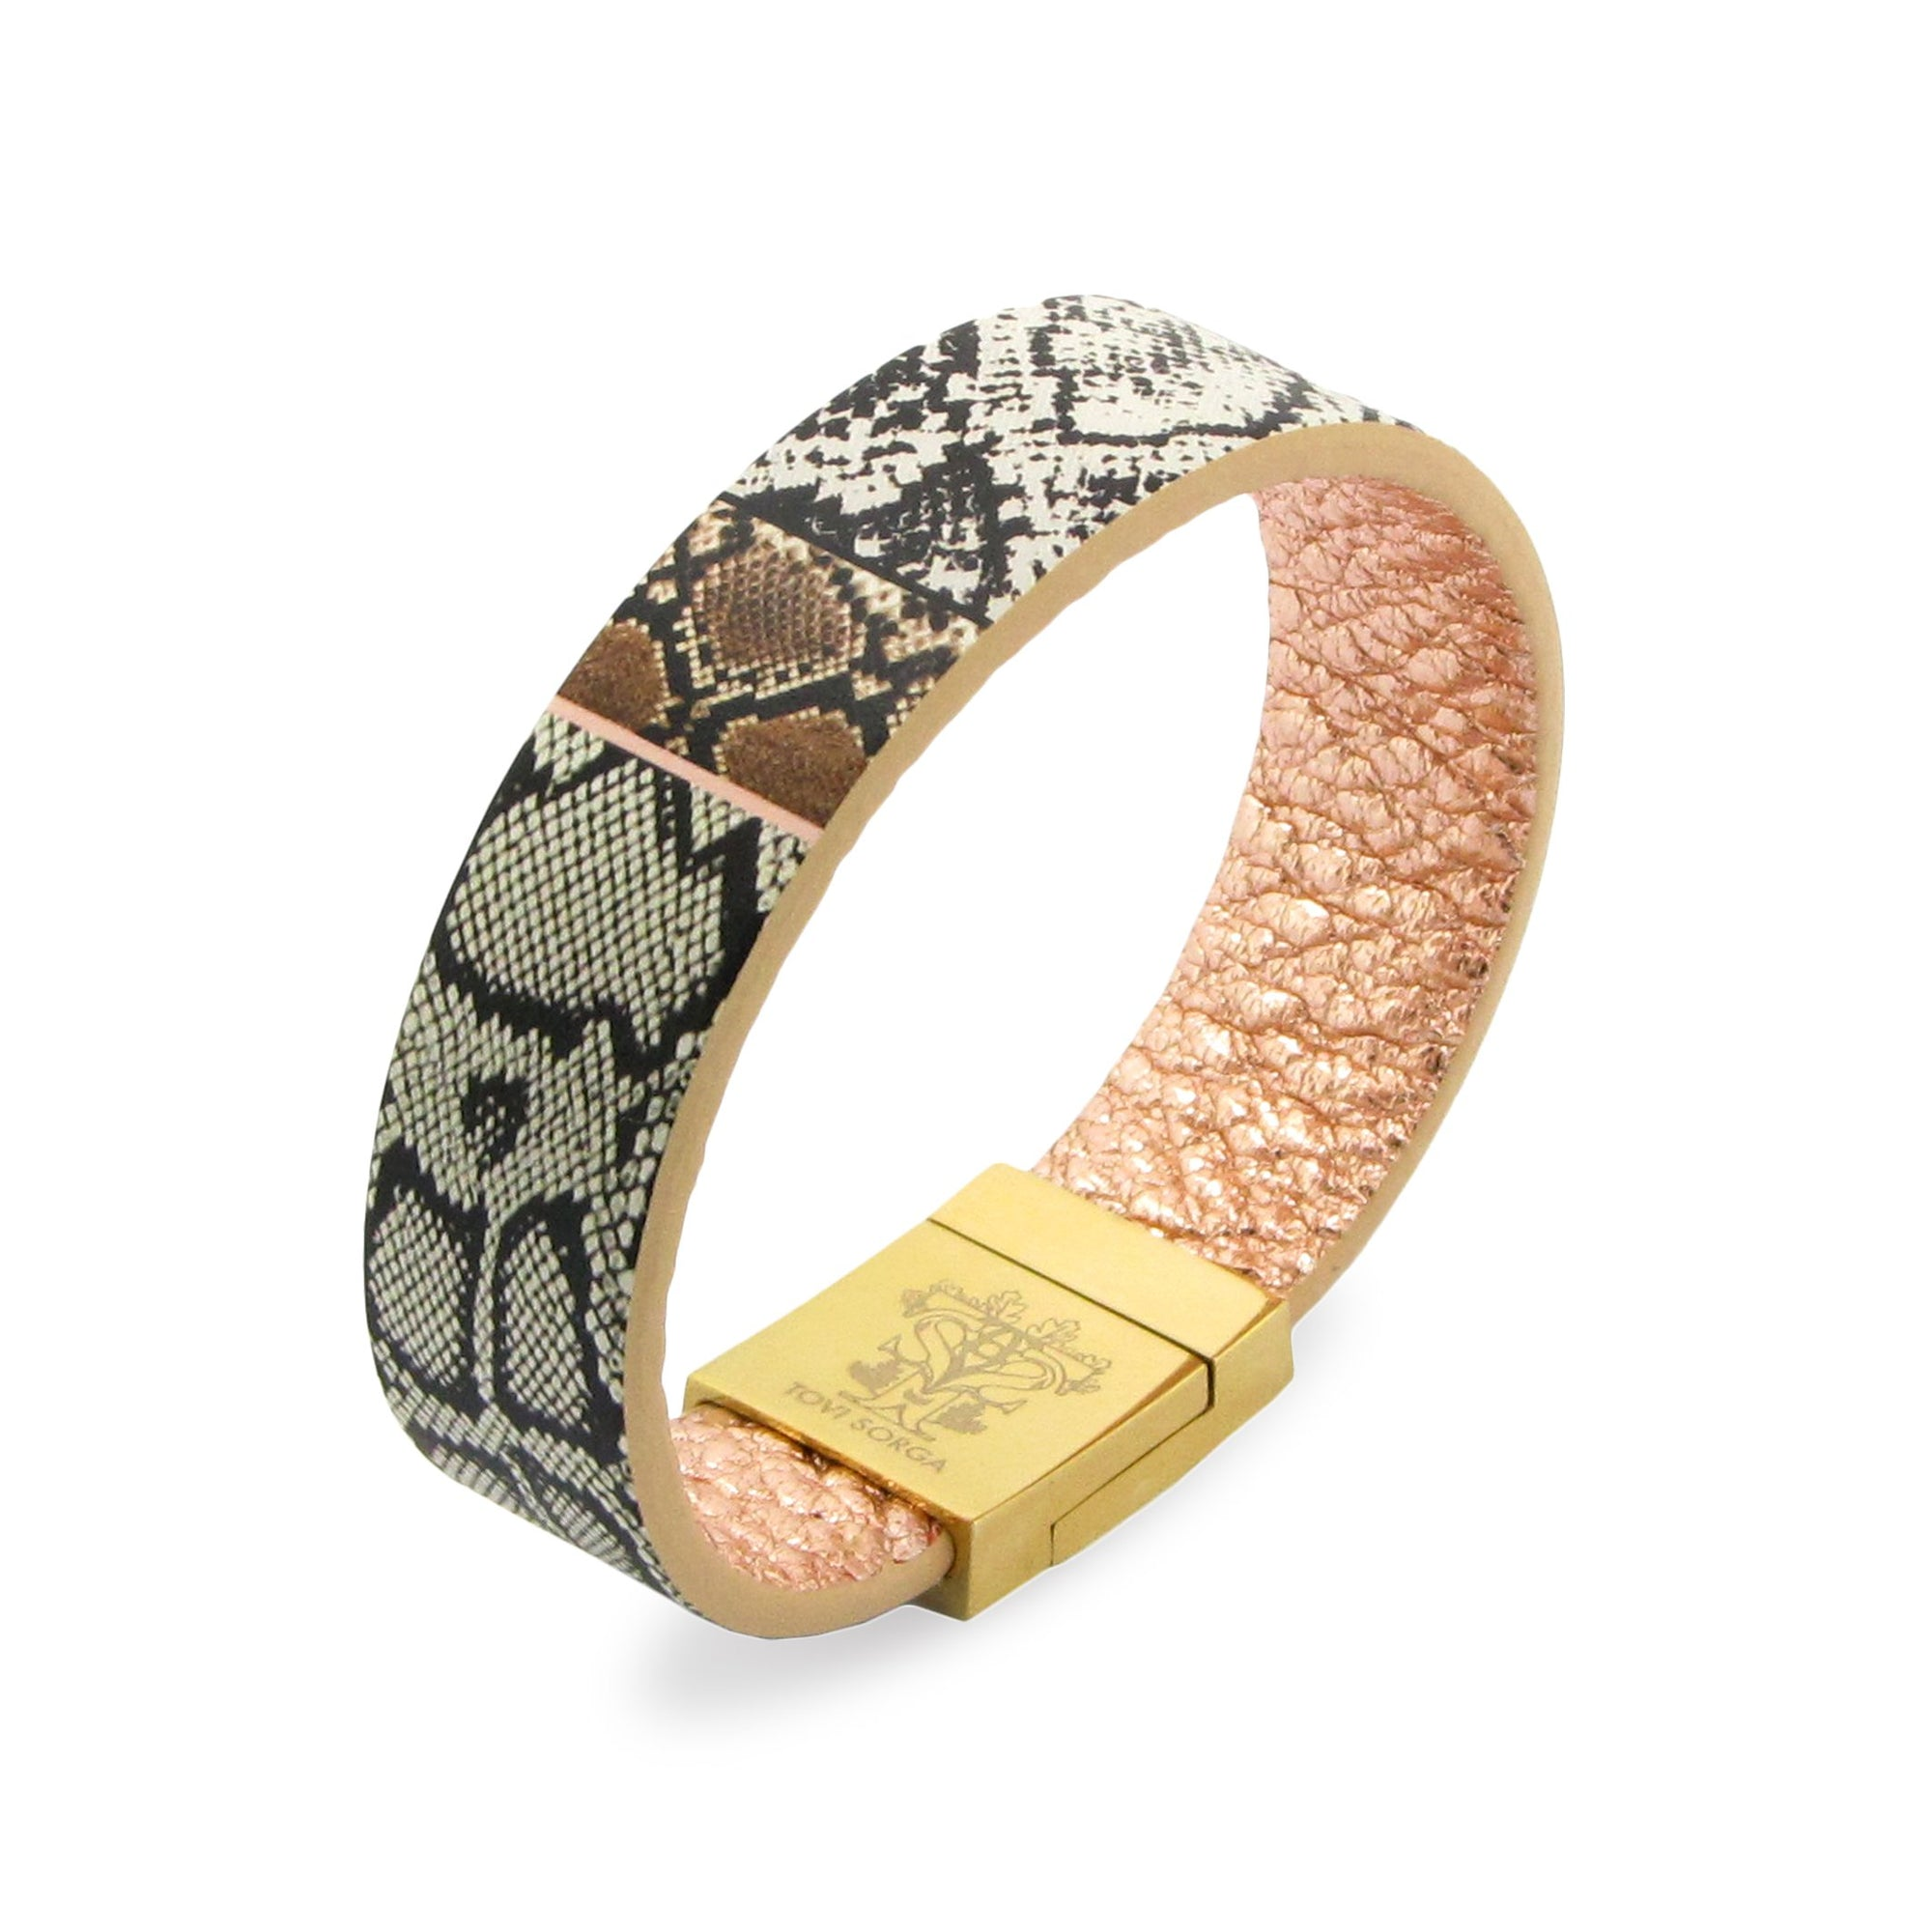 Leather Contactless Payment Bracelet: White Snake